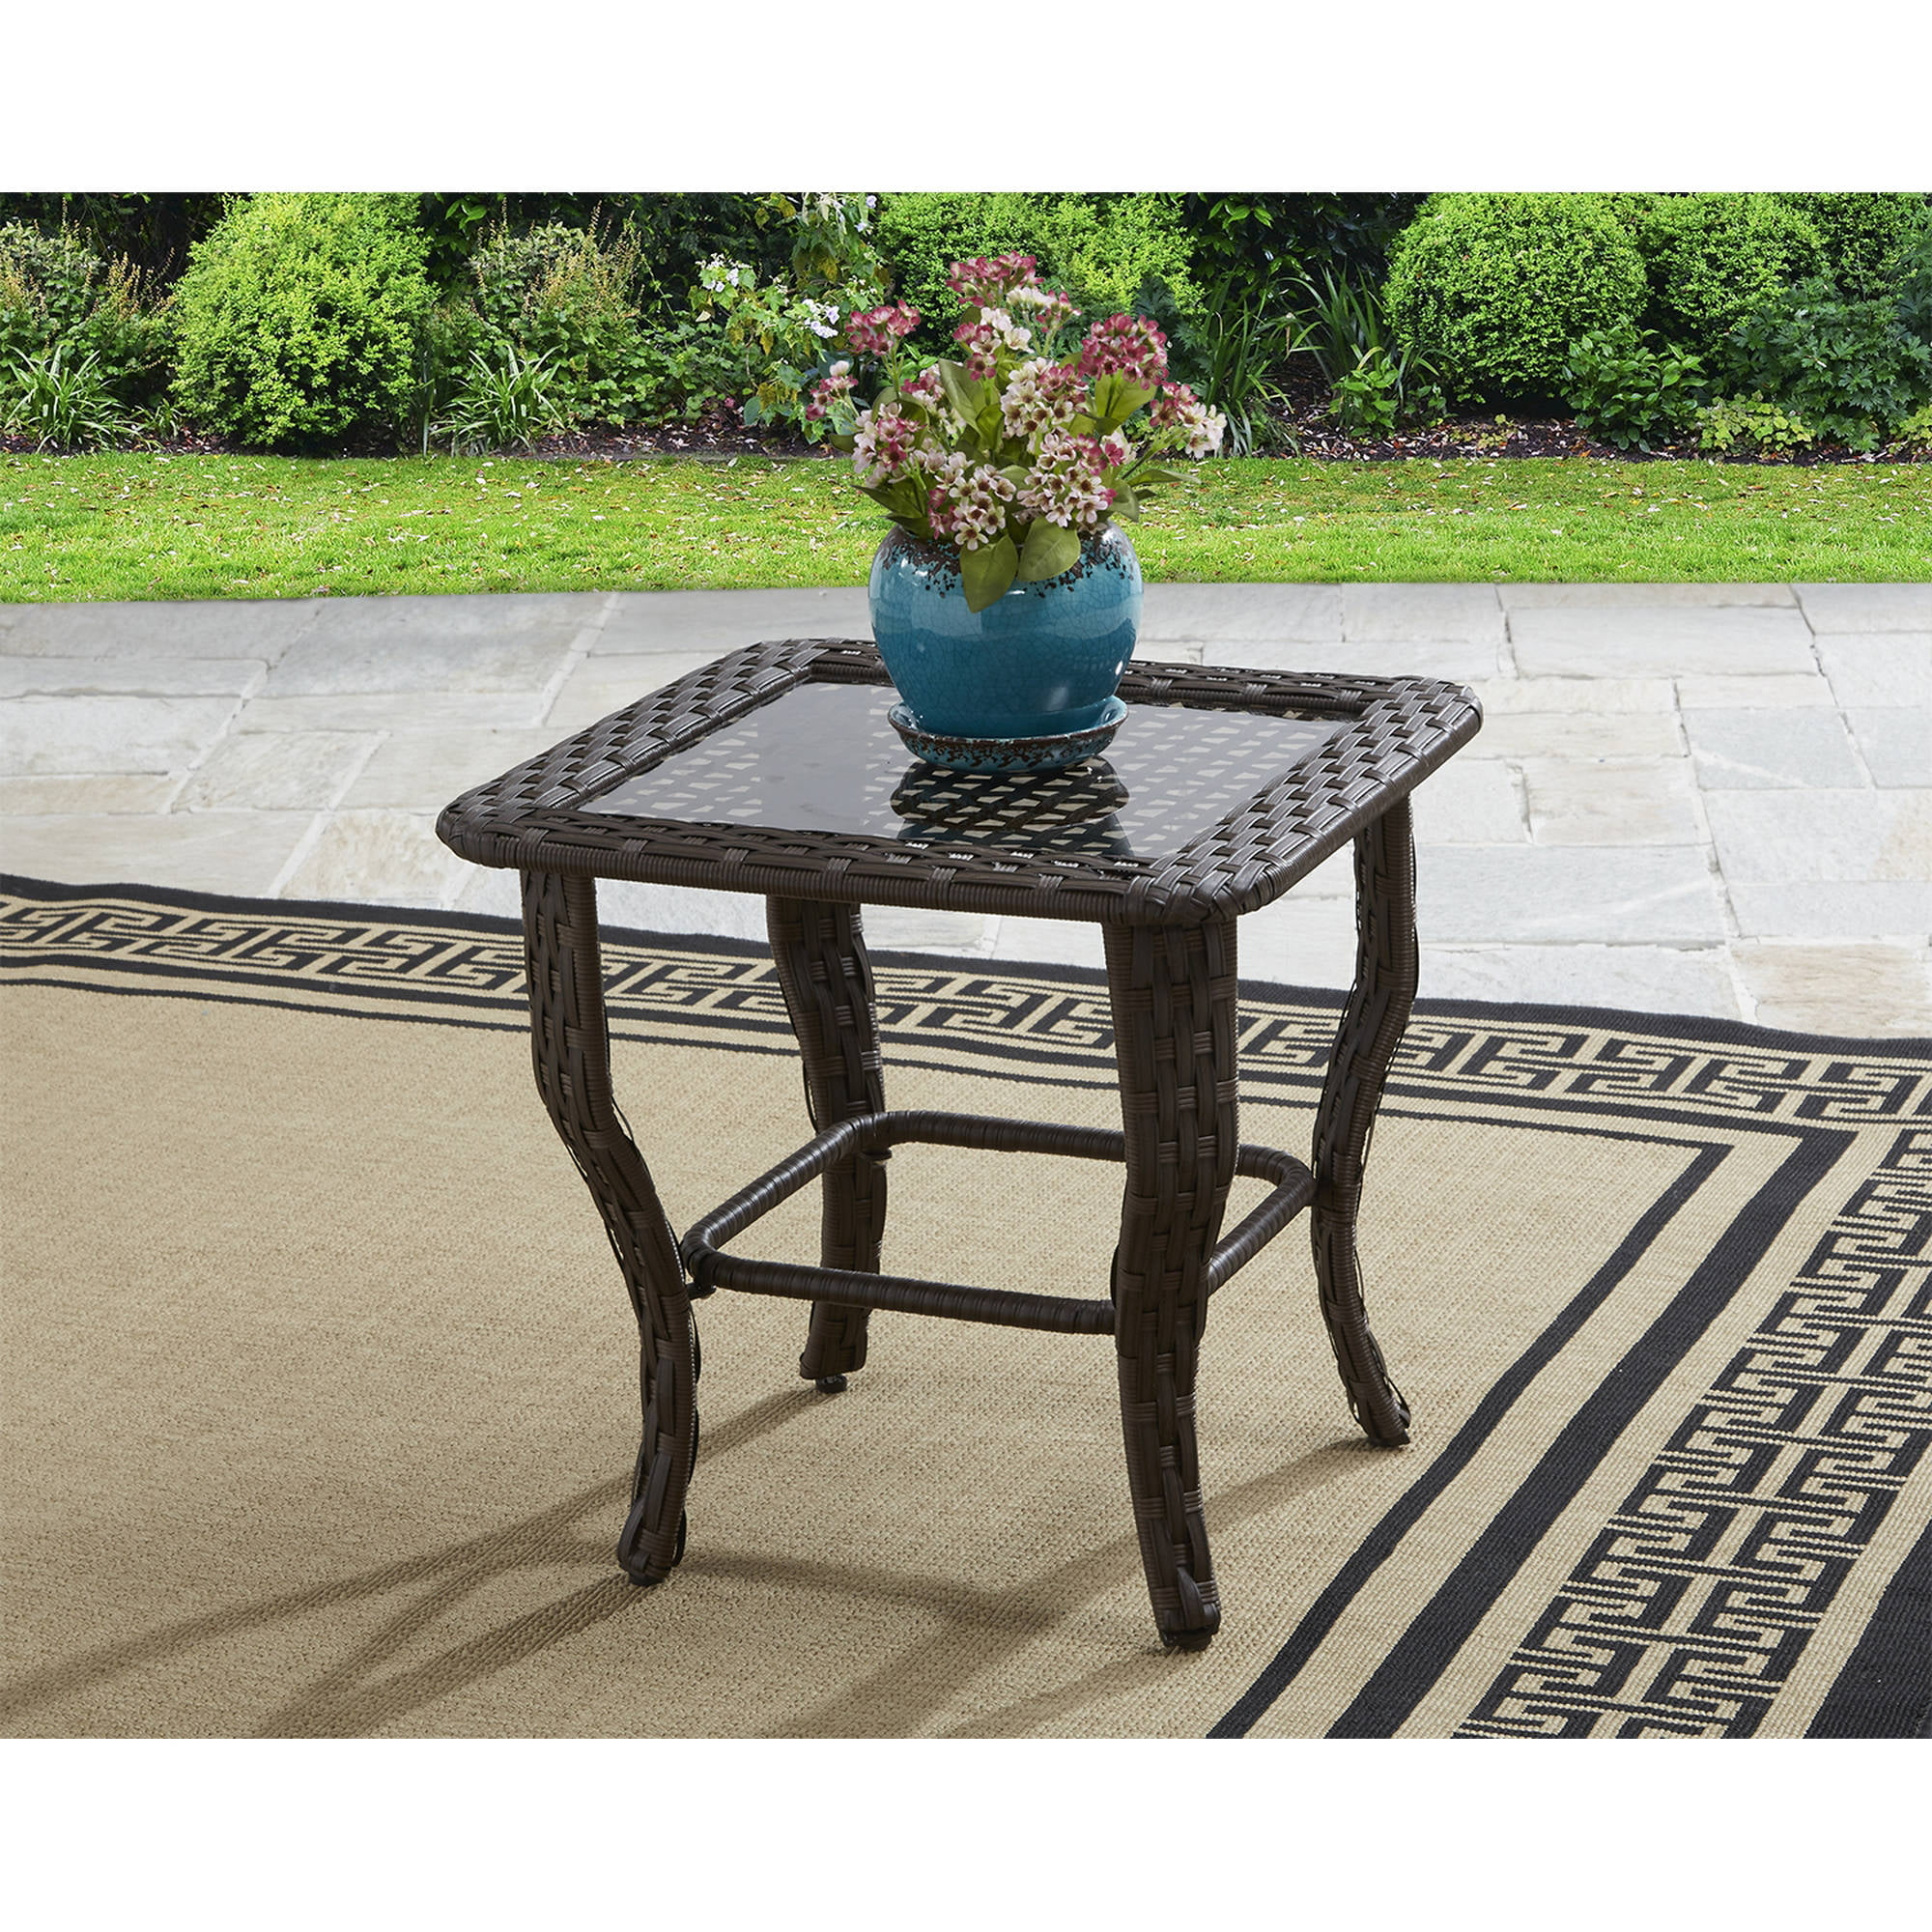 Outdoor Chairs And Tables patio furniture - walmart